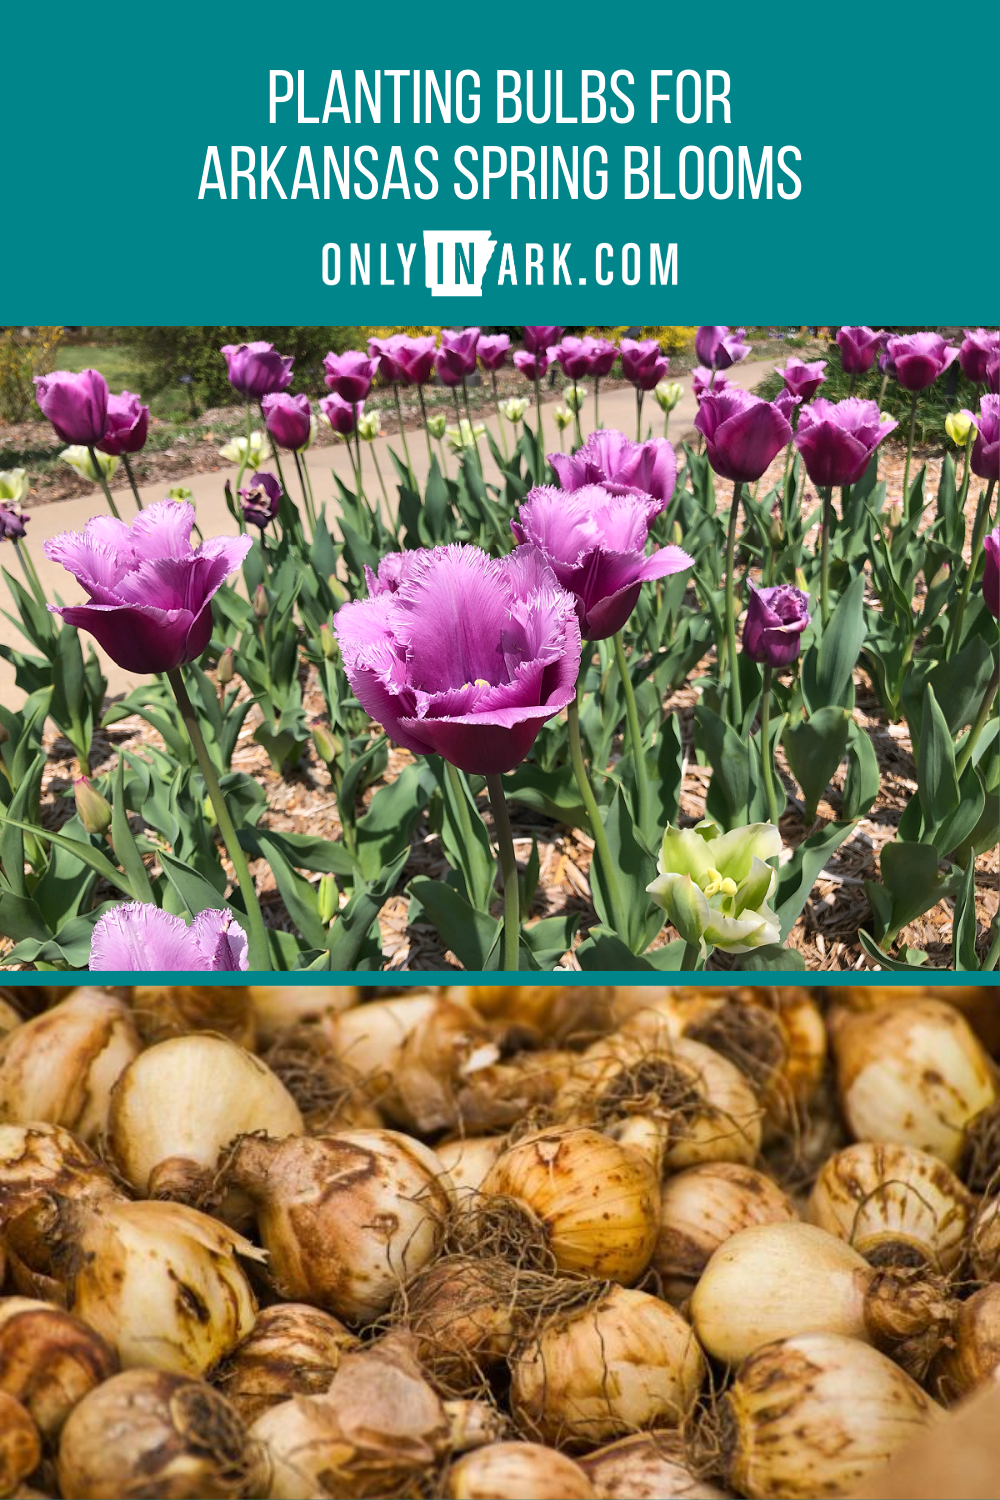 Planting Bulbs For Arkansas Spring Blooms In 2020 Planting Bulbs Spring Blooms Plants